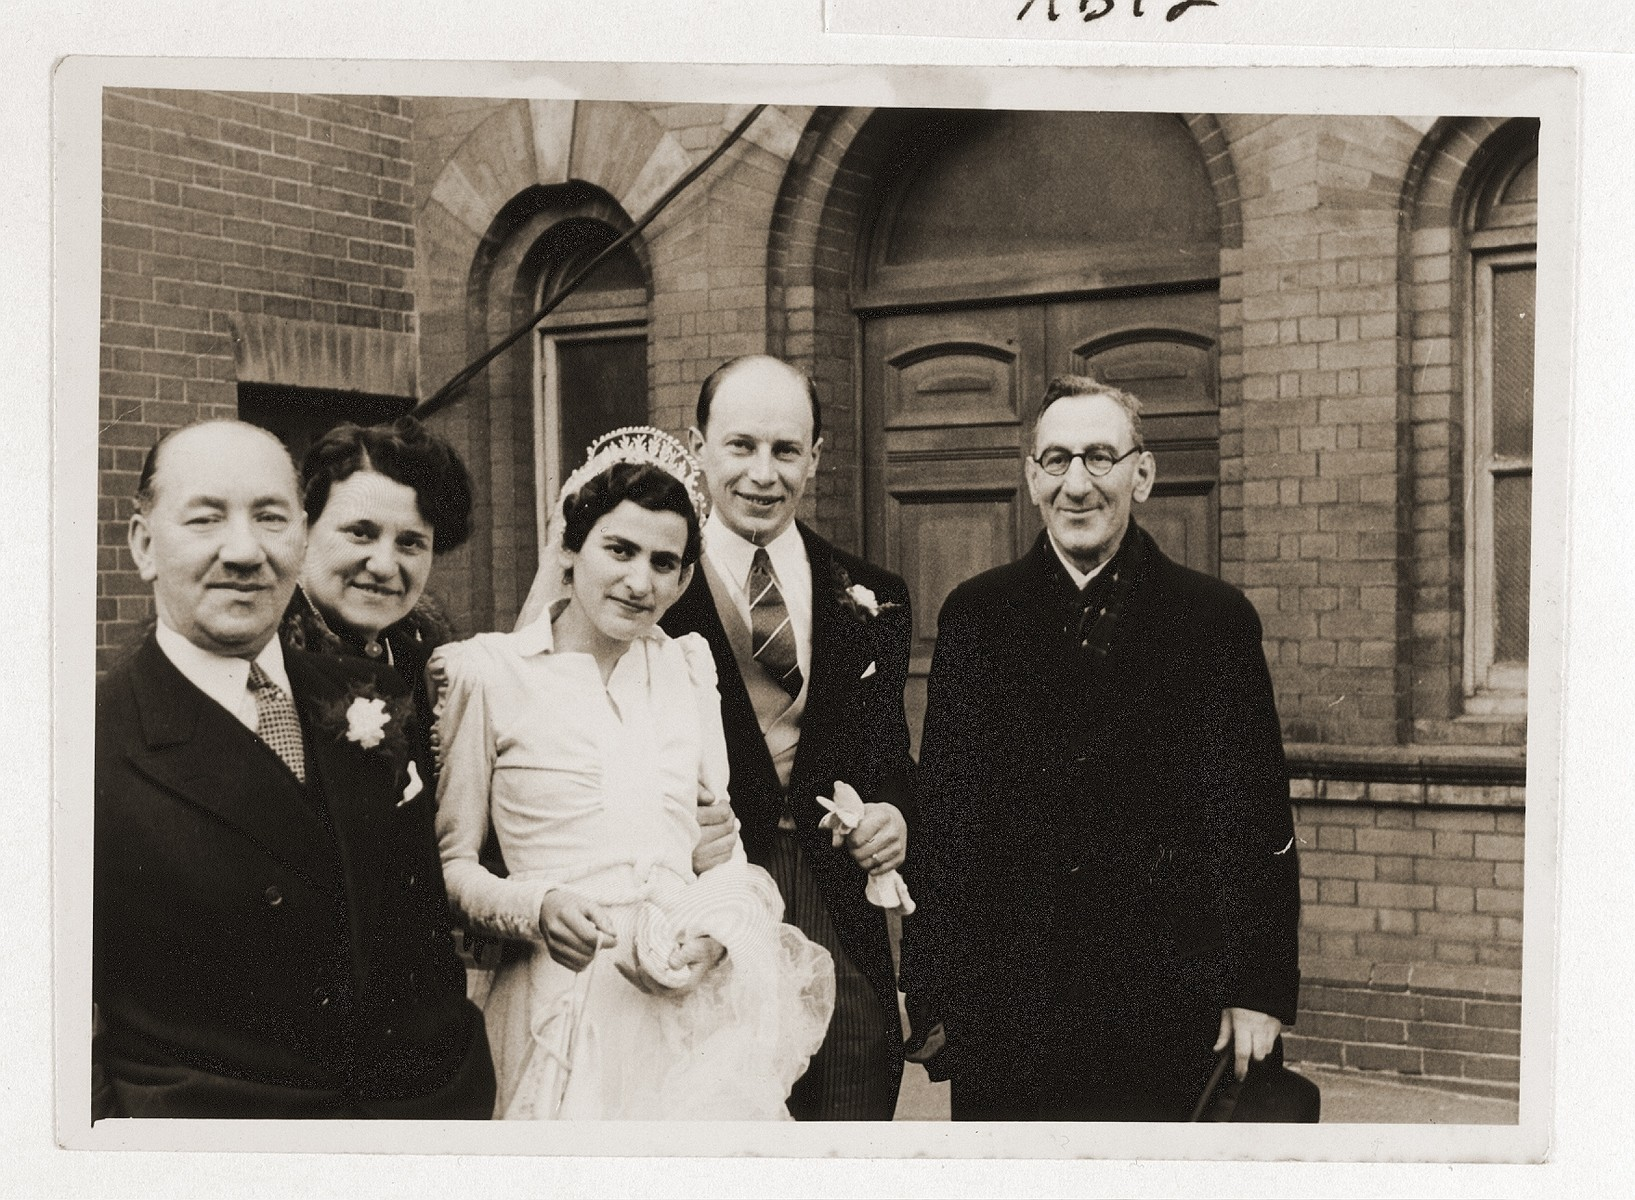 Wedding of Oskar and Gwen (Verat) Blechner in London.